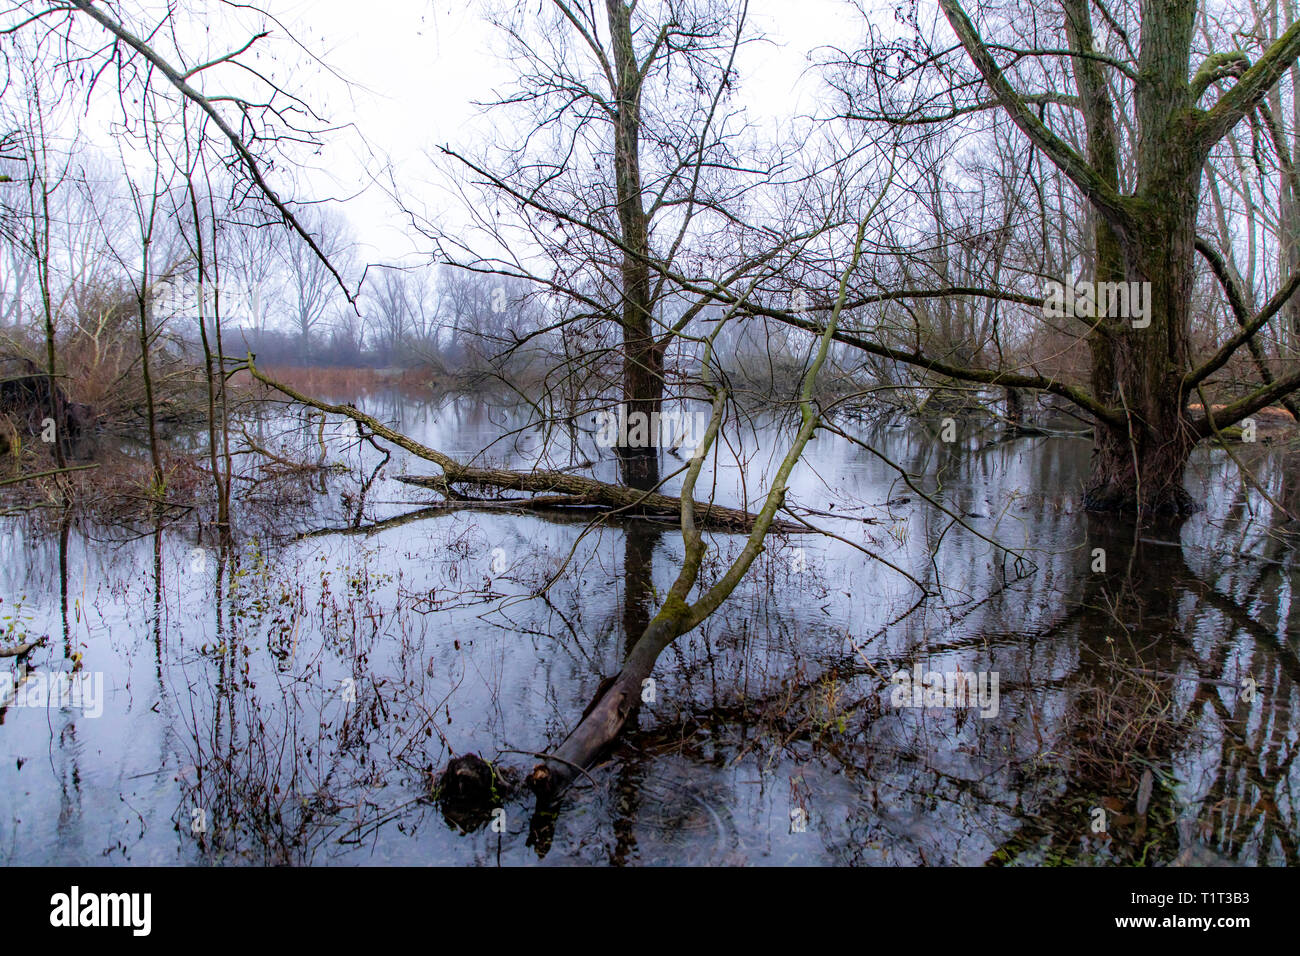 The nature reserve Bislicher Insel, near Xanten on the Lower Rhine, Germany - Stock Image